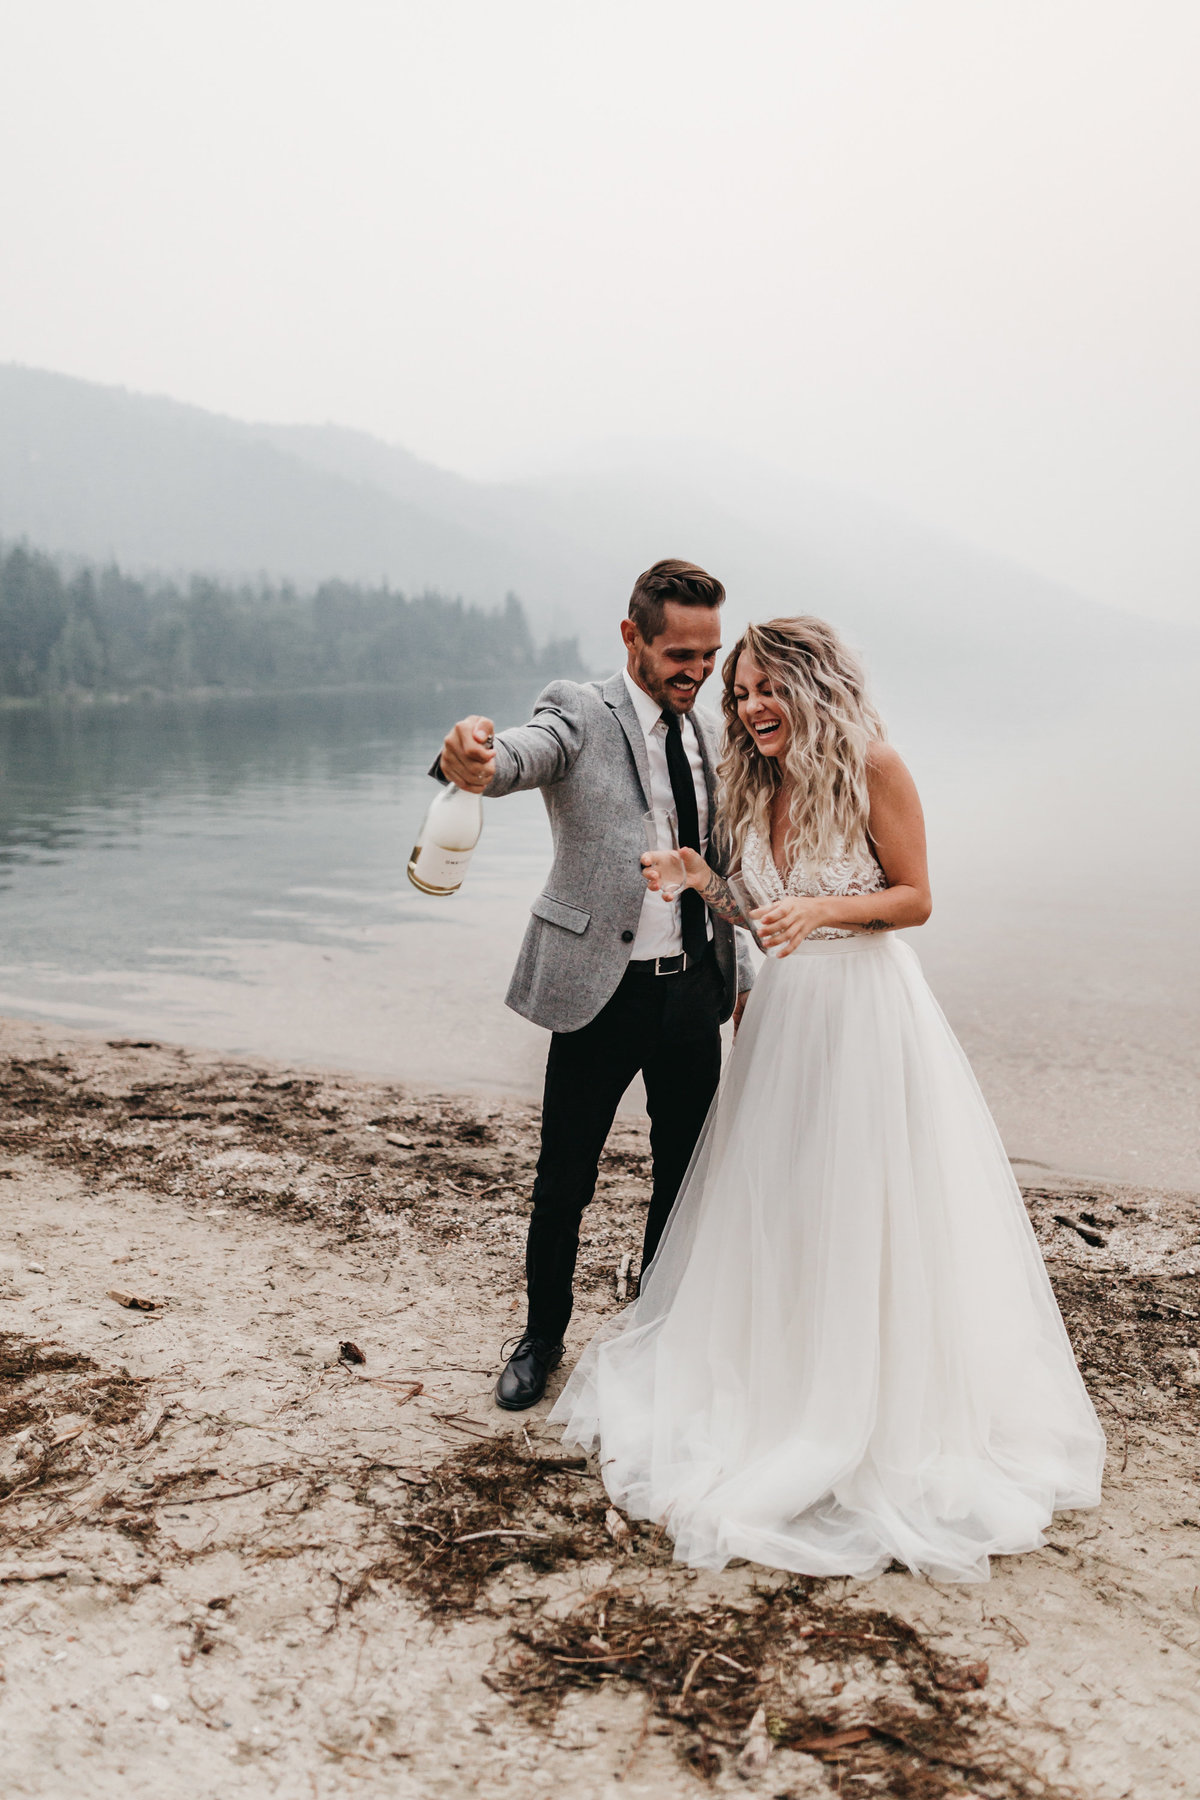 athena-and-camron-sara-truvelle-bridal-wenatchee-elopement-intimate-44-champagne-pop-bride-groom-fun